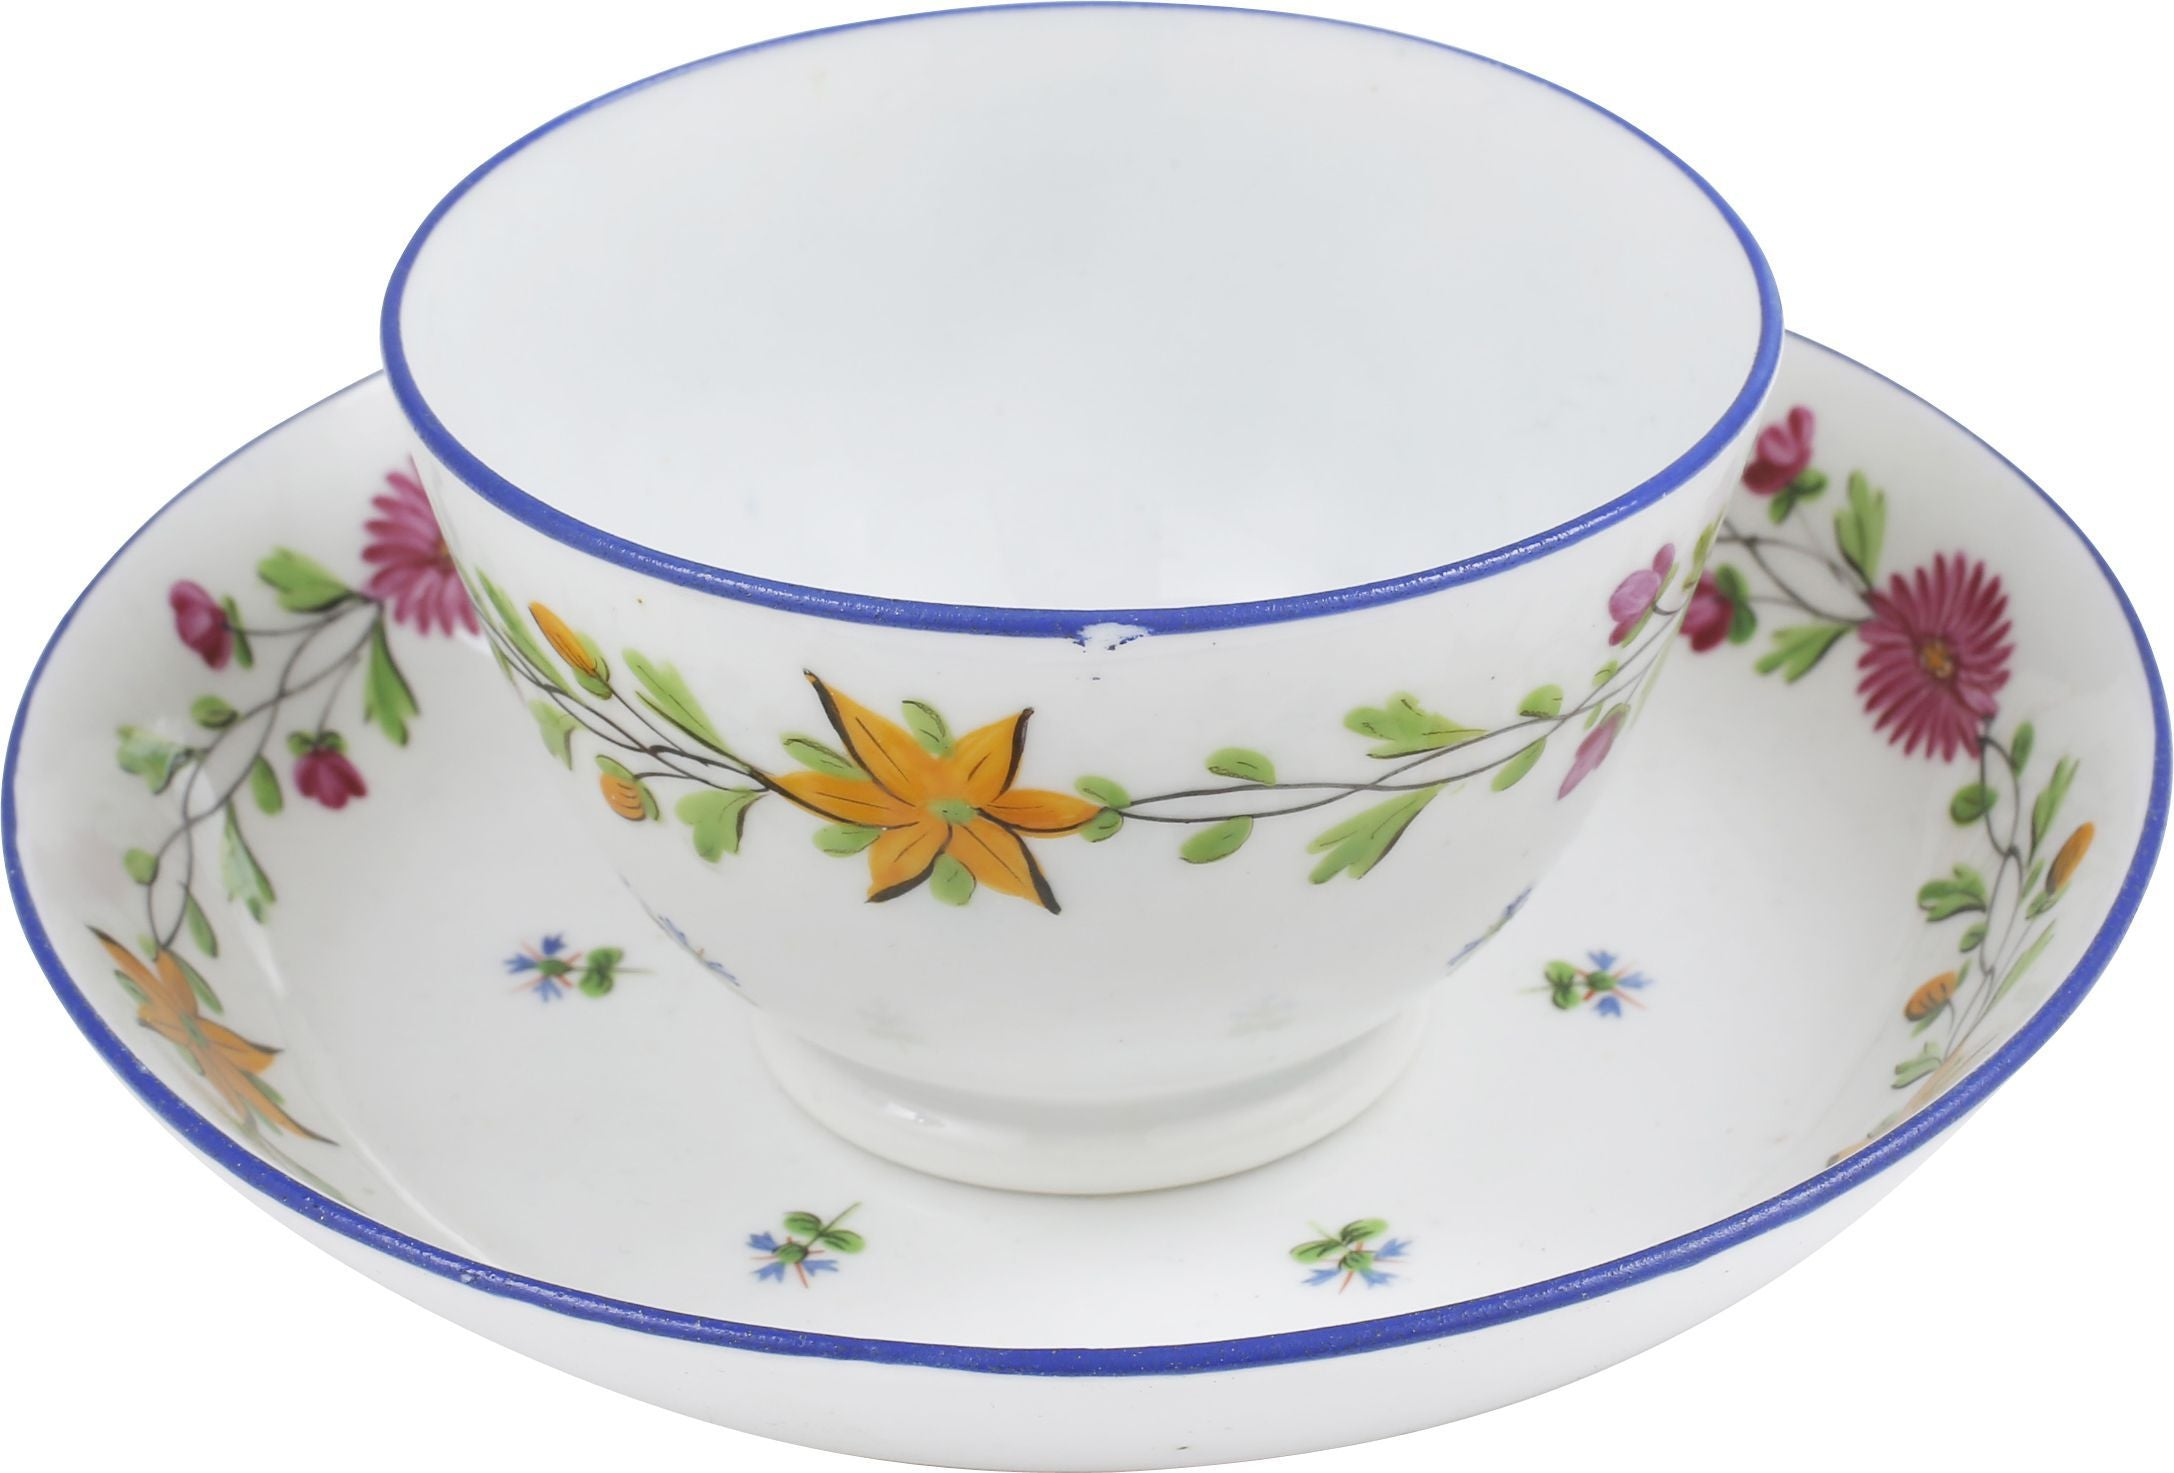 English Porcelain Tea Bowl And Under Bowl C.1800-25 - Product